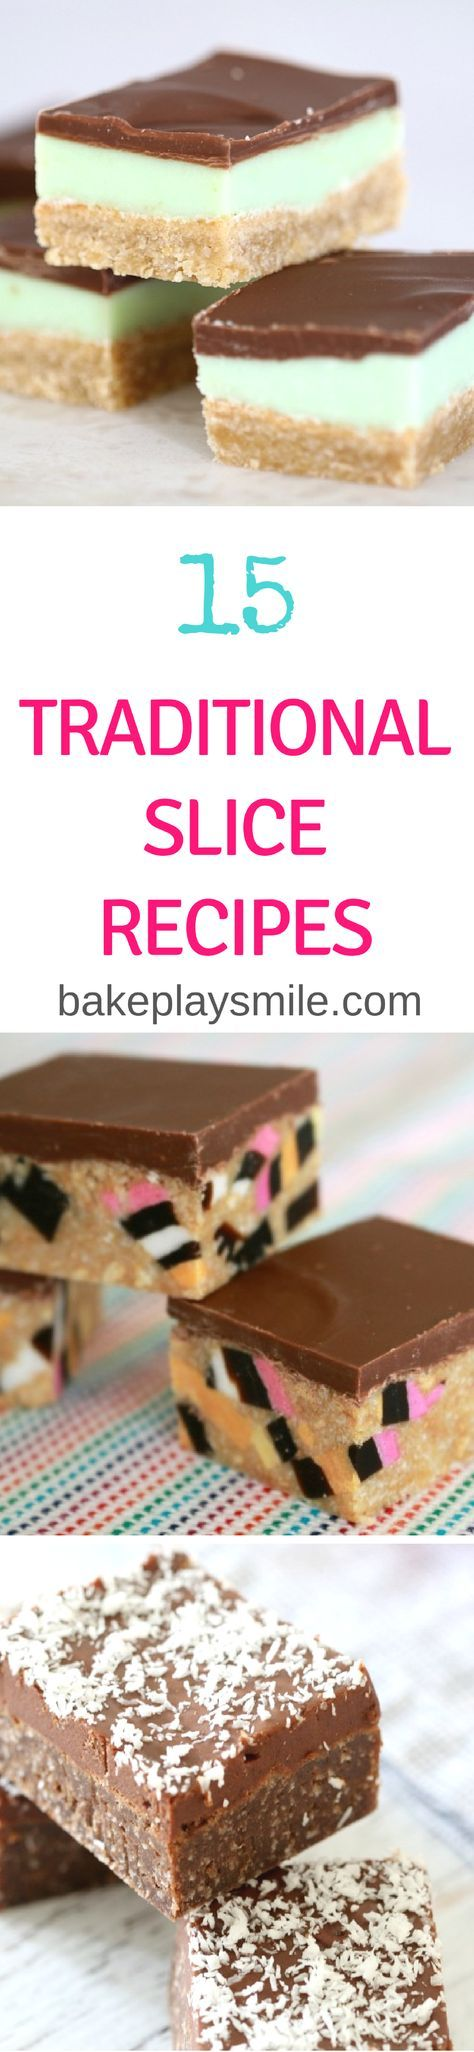 15 Classic & Traditional Slice Recipes